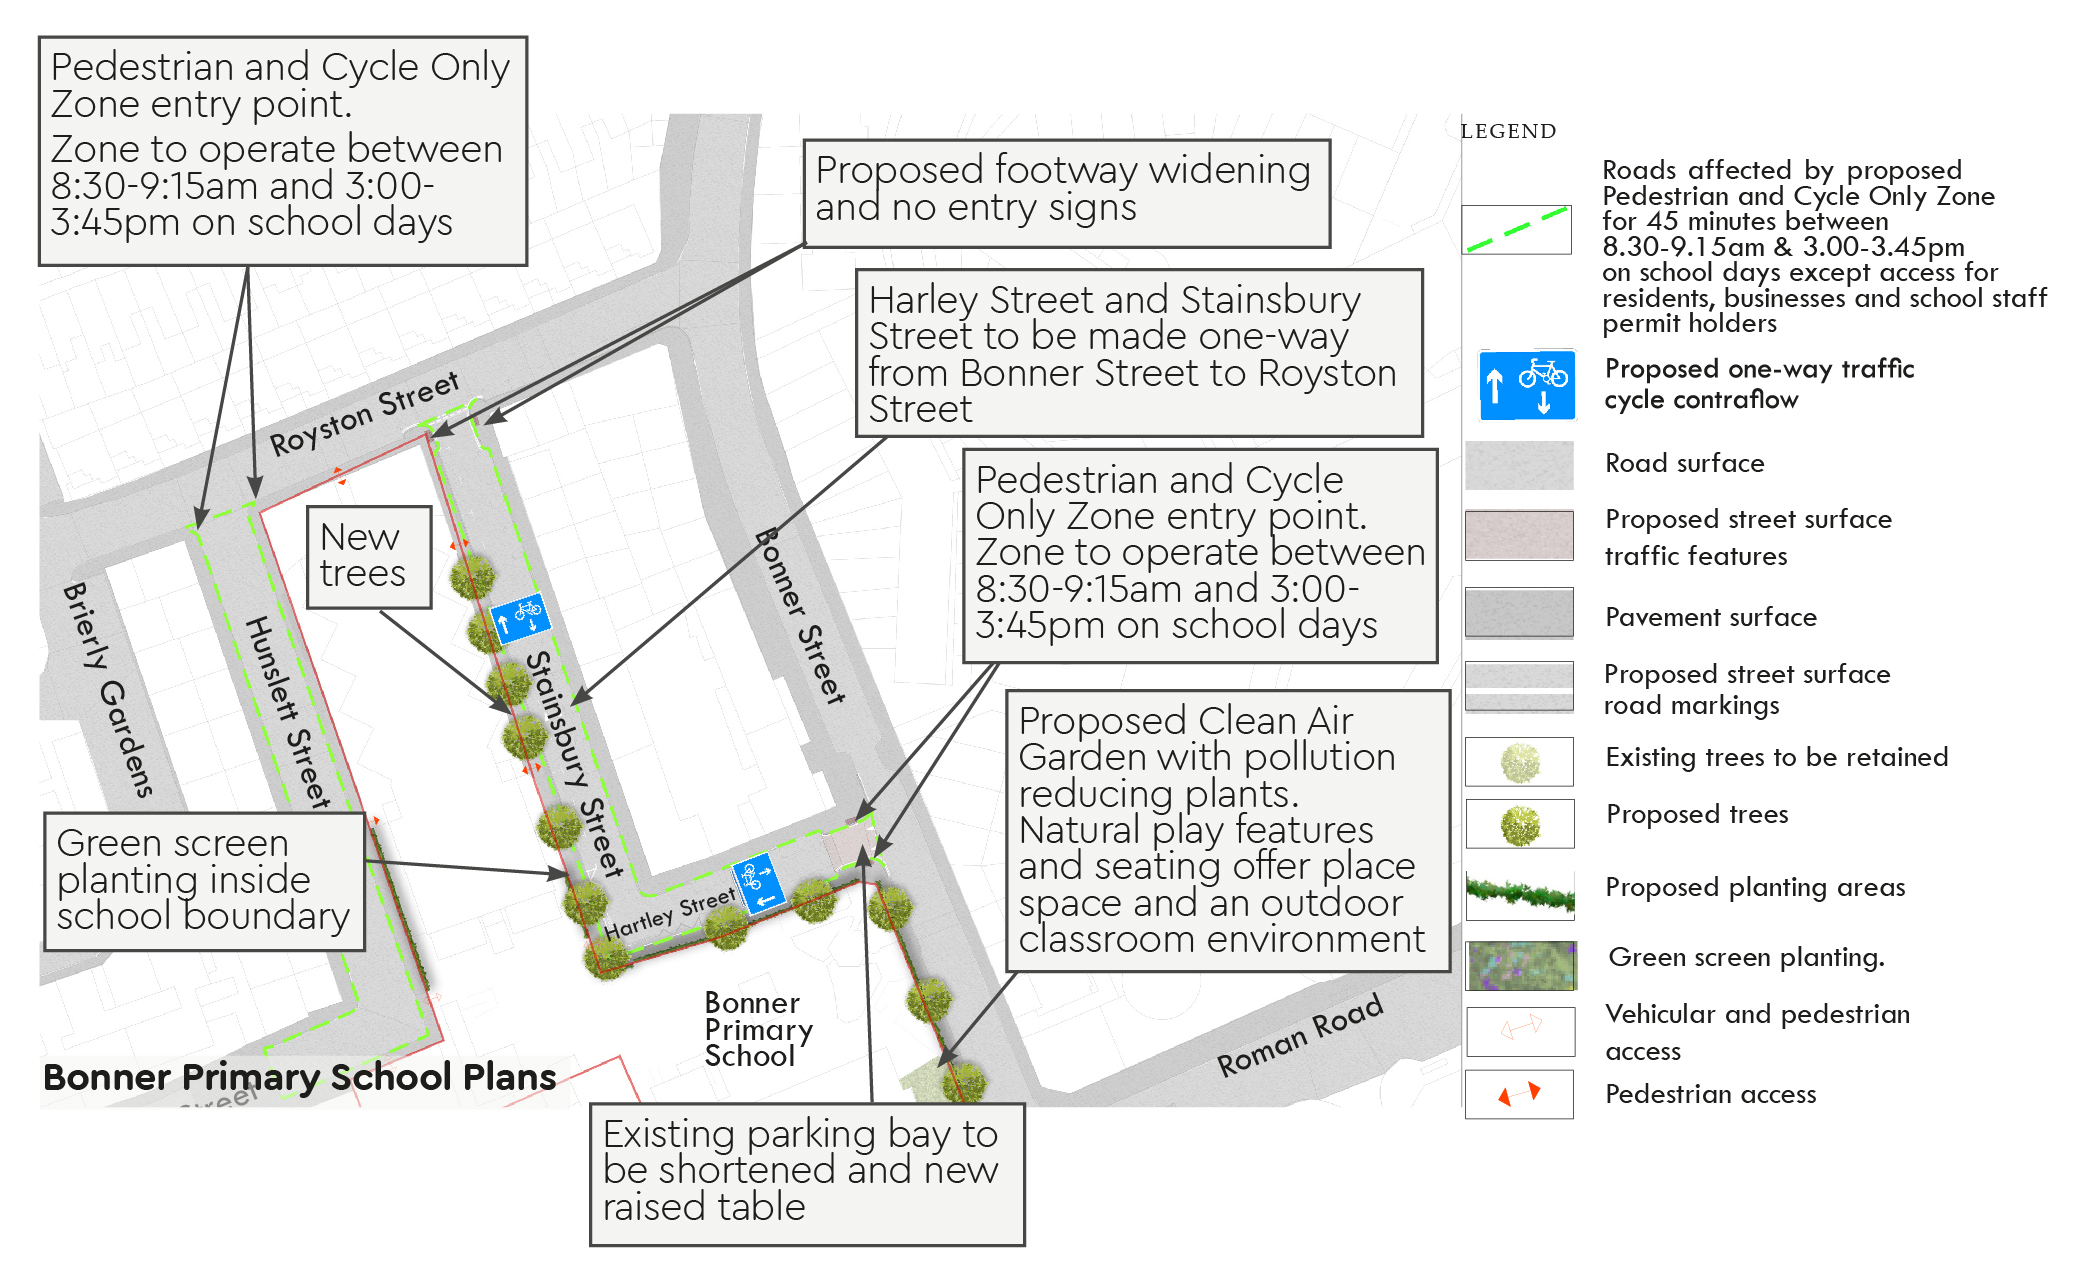 Bonner Primary School Plan: Pedestrian and Cycle Only Zone at Hartley Street, Stainsbury Street and Hunslett Street between 8:30am-9:15am and 3pm-3:45pm and proposed Clean Air Garden with pollution reducing plans and natural play features and seating for an outdoor classroom environment.